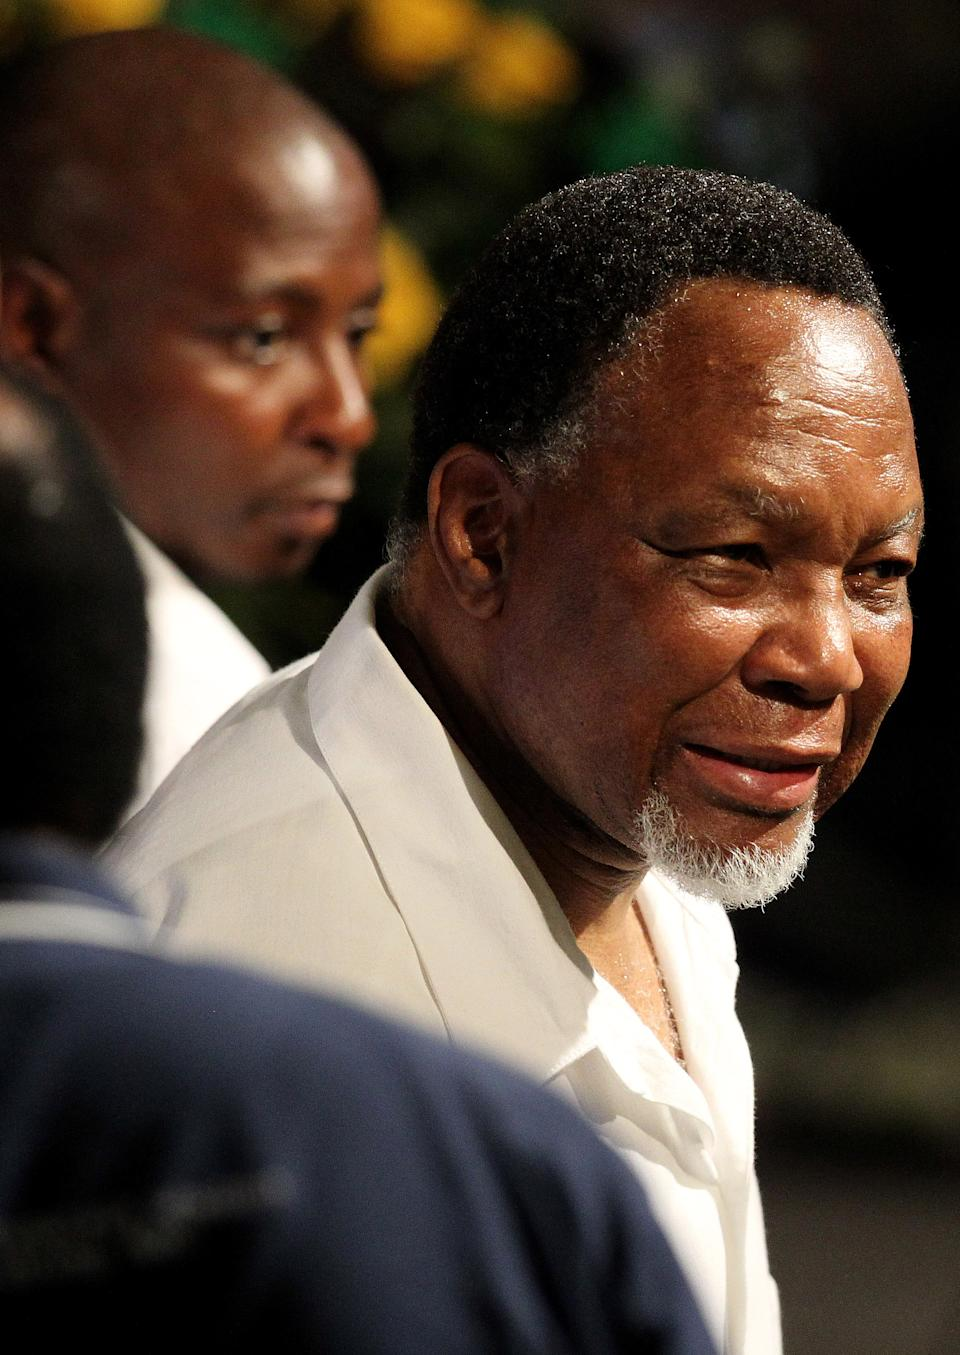 Ruling party African National Congress (ANC) deputy president Kgalema Motlanthe meets delegates at the end of the nominations for the new leadership of the ANC's elective conference at the University of the Free State in Bloemfontein, South Africa, Monday, Dec. 17, 2012. (AP Photo/Themba Hadebe)